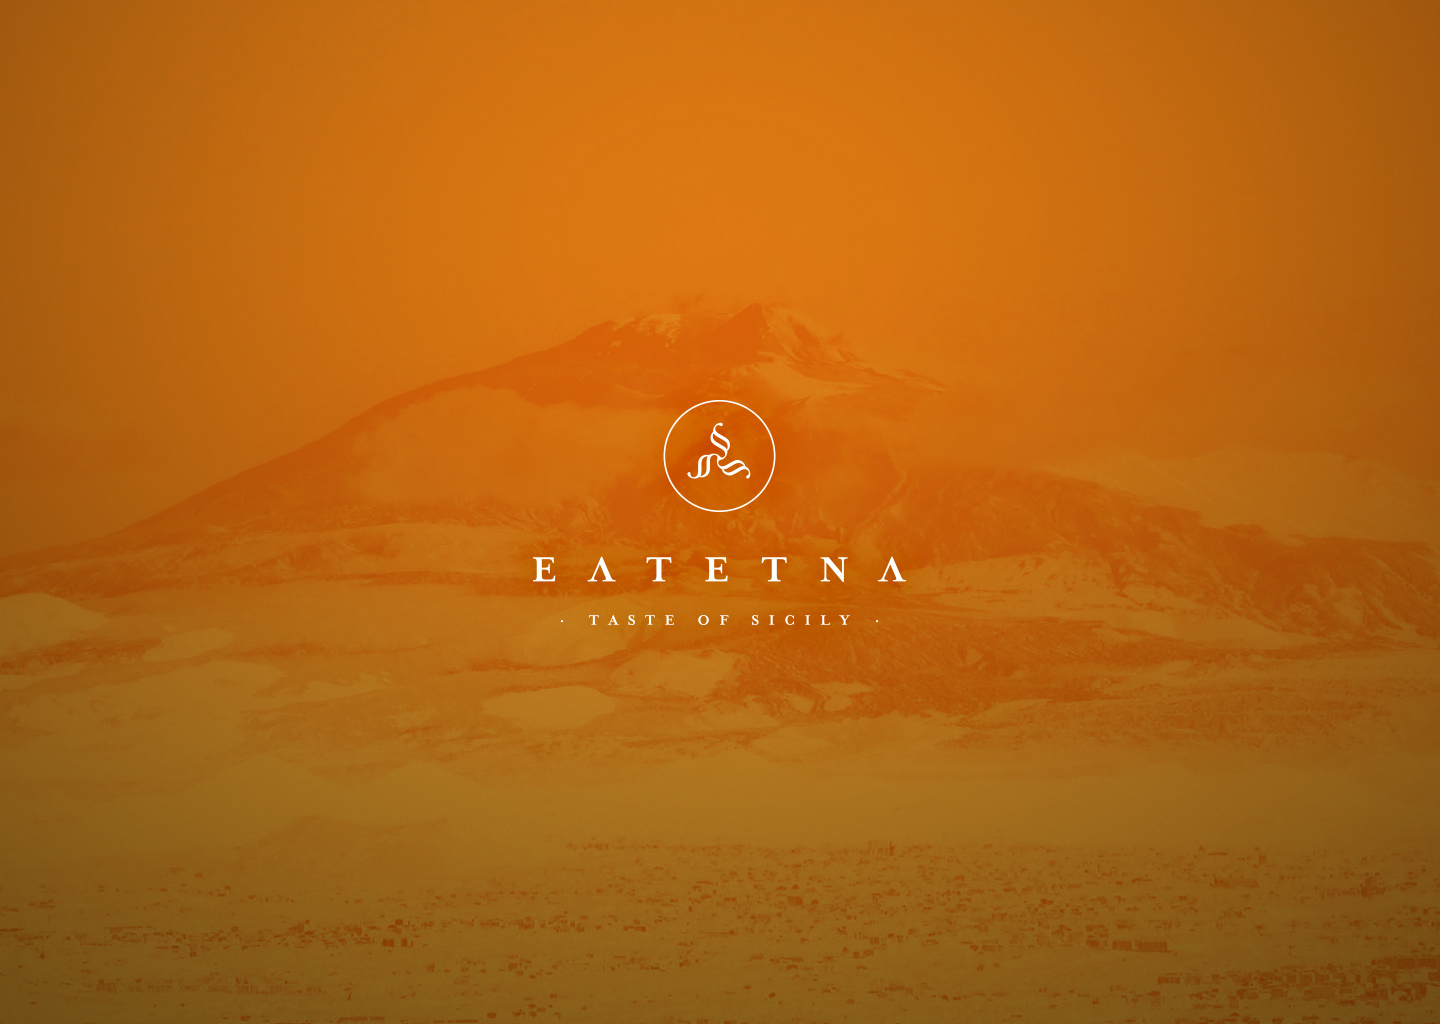 page-eatetna_01